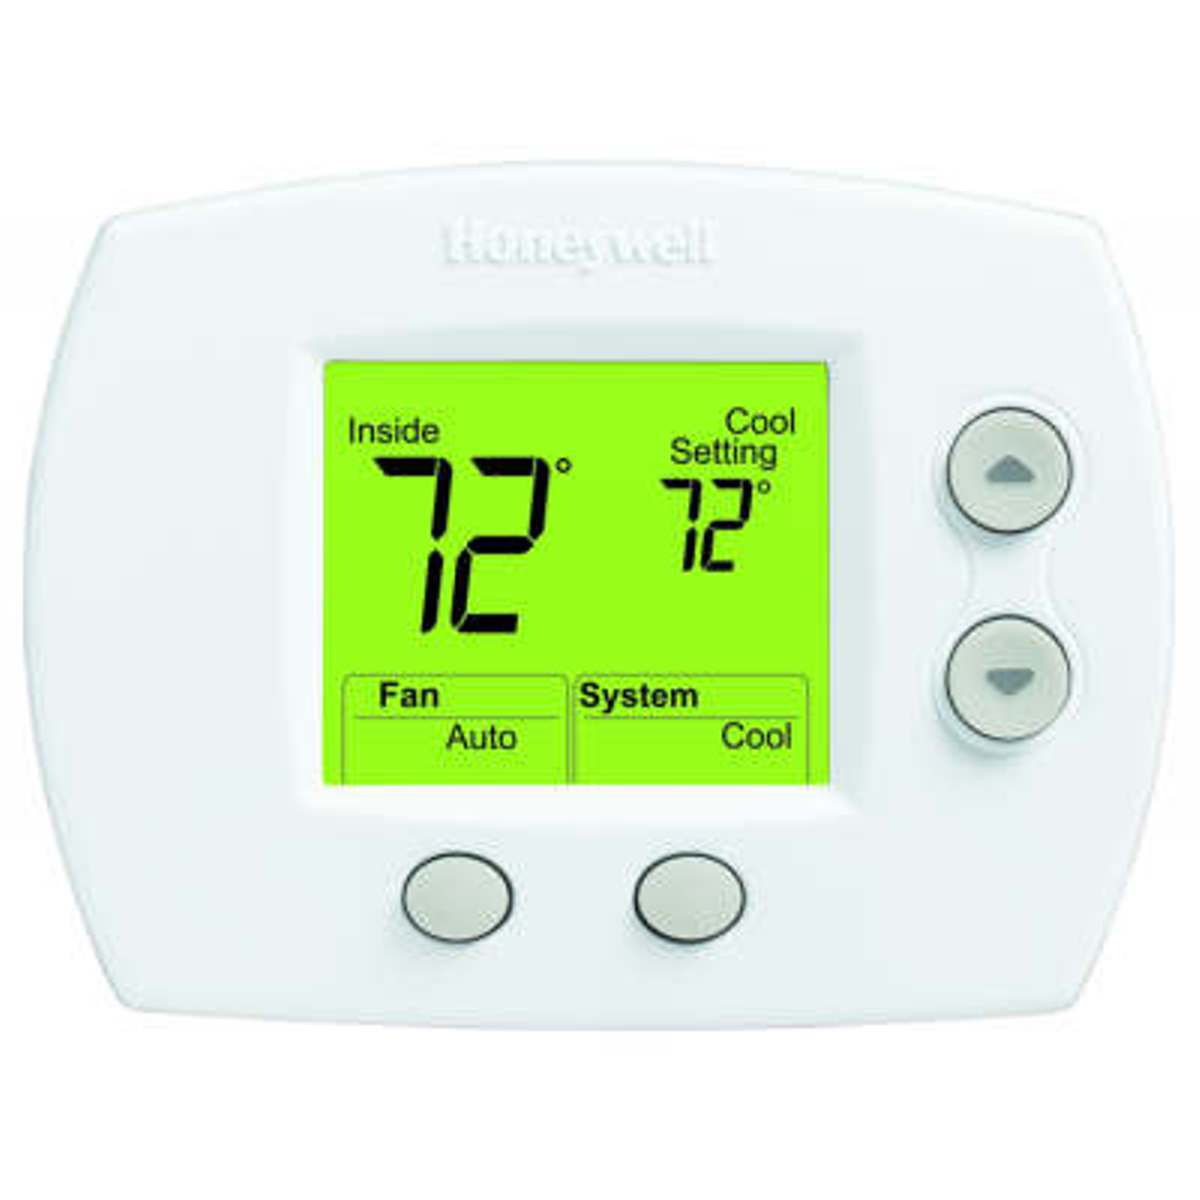 Honeywell th5110d1006 digital non programmable thermostats tools and links sciox Images